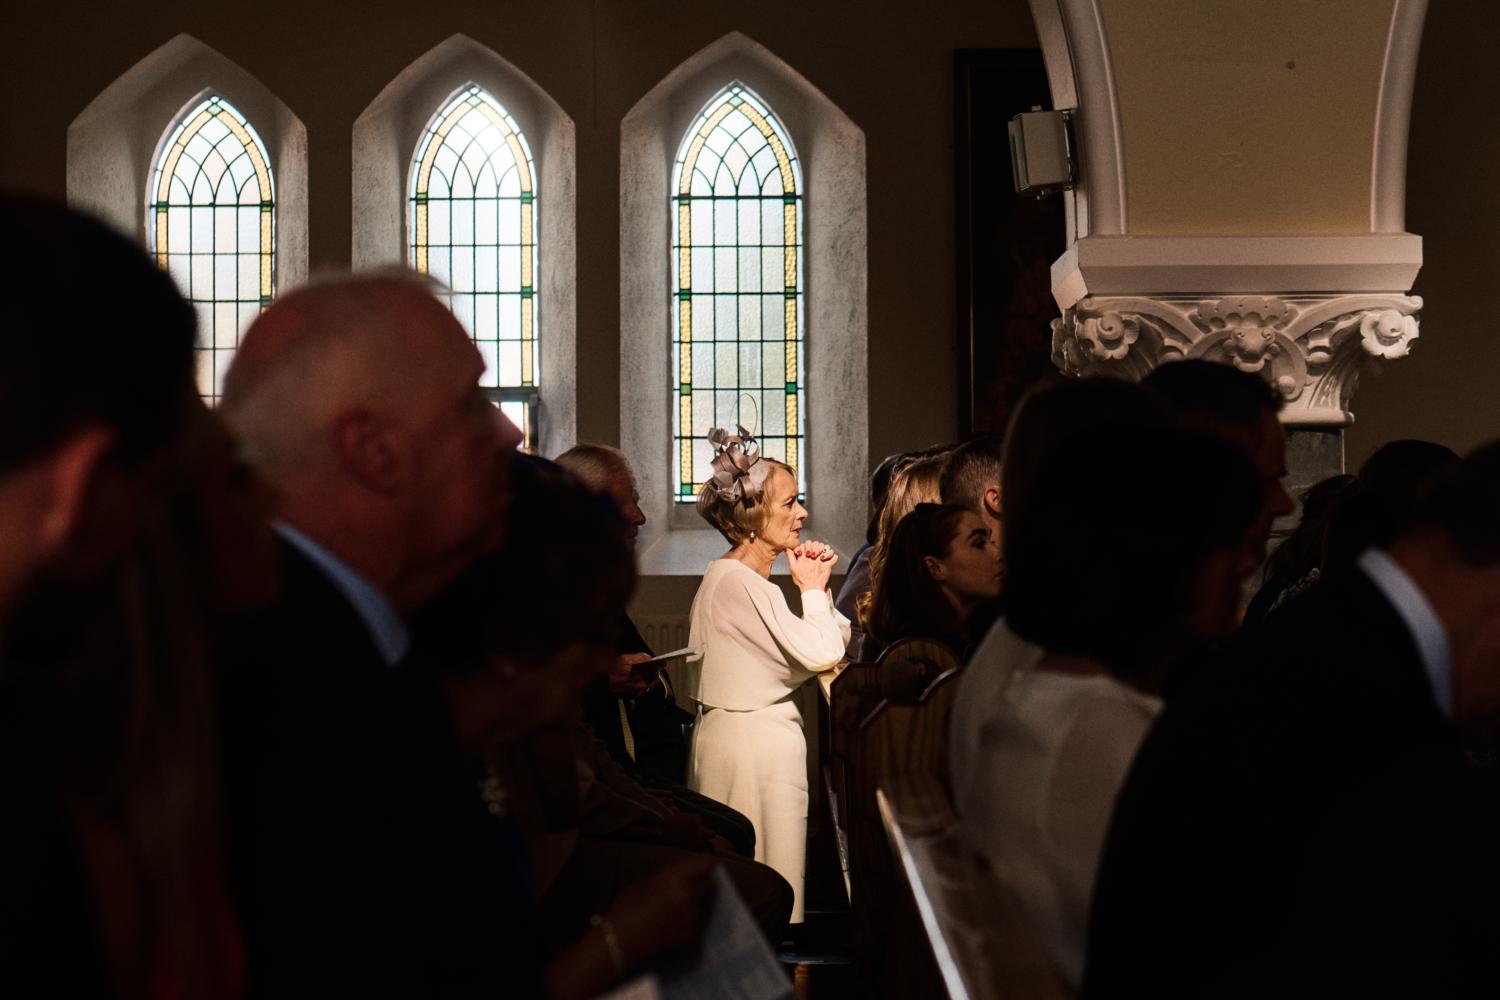 A woman prays during an Irish wedding mass